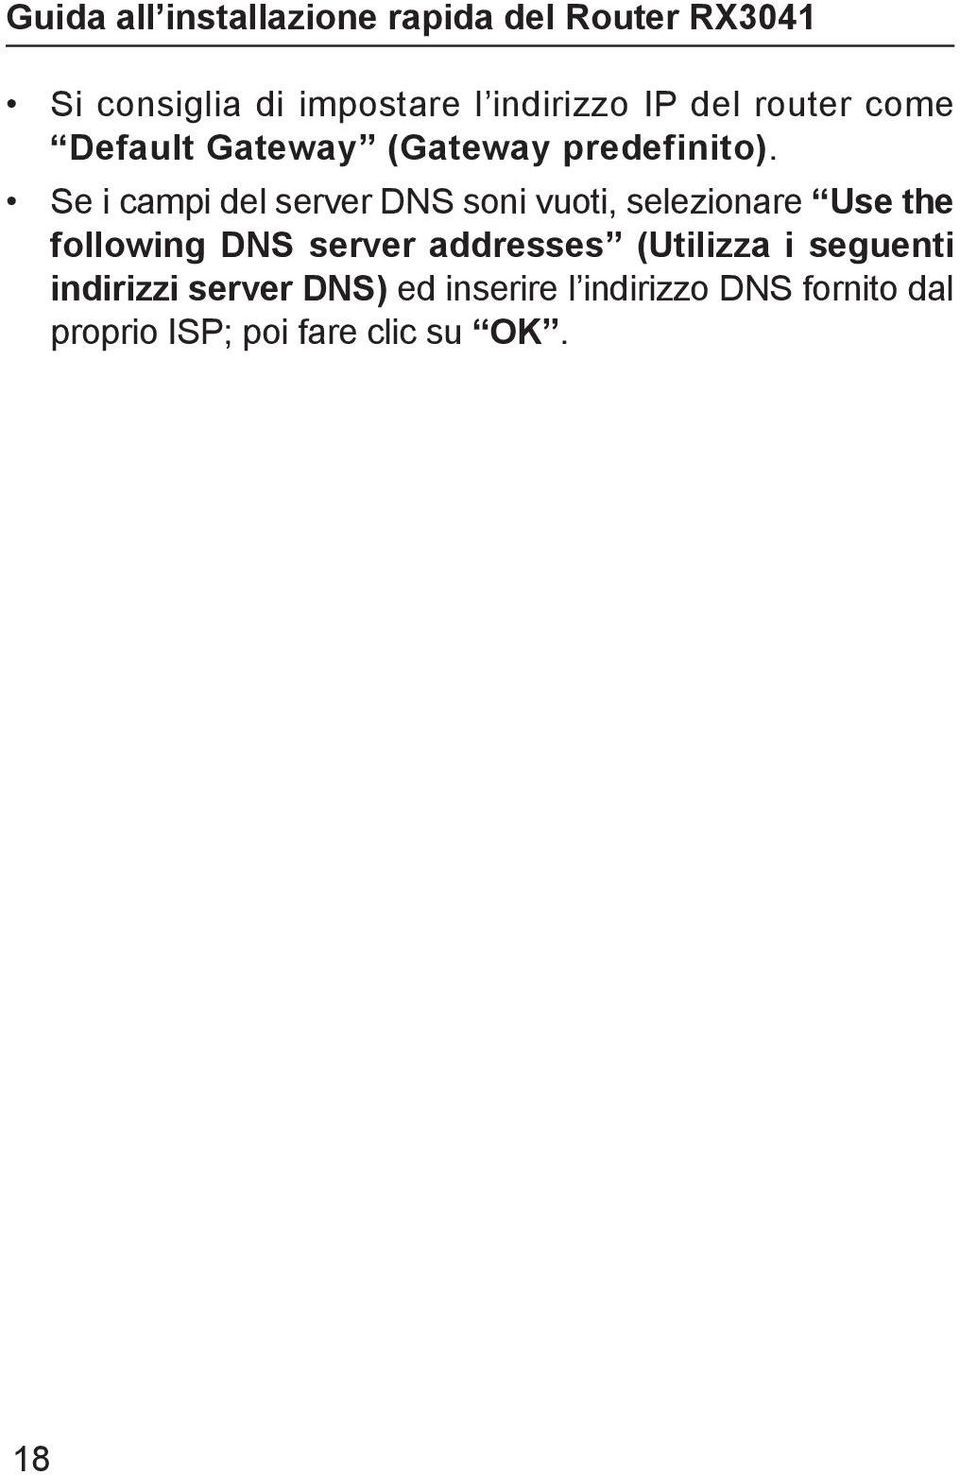 Se i campi del server DNS soni vuoti, selezionare Use the following DNS